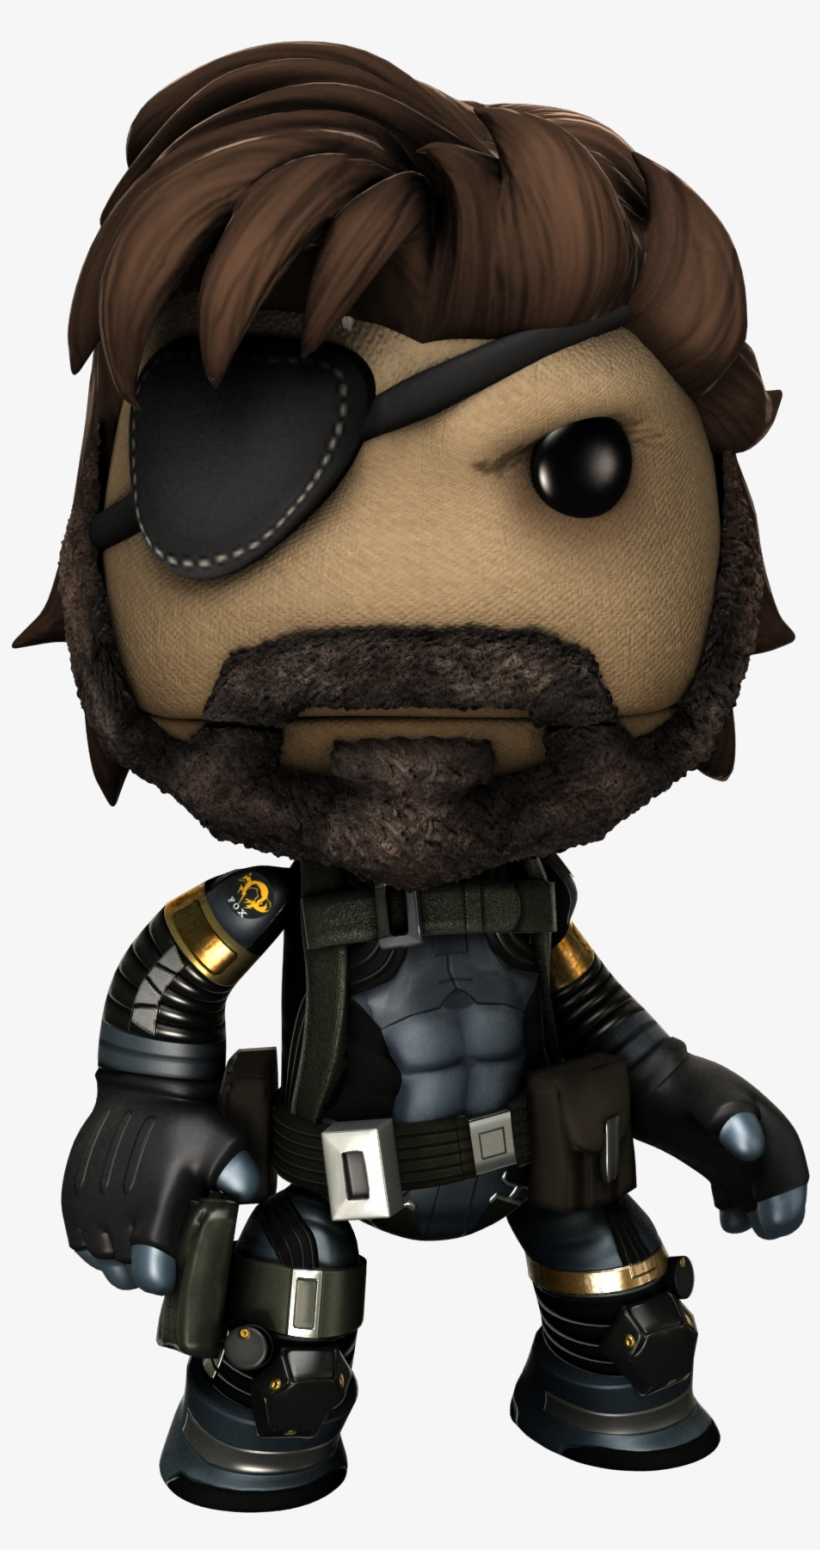 Metal Gear Solid - Little Big Planet Metal Gear Solid, transparent png #6272196